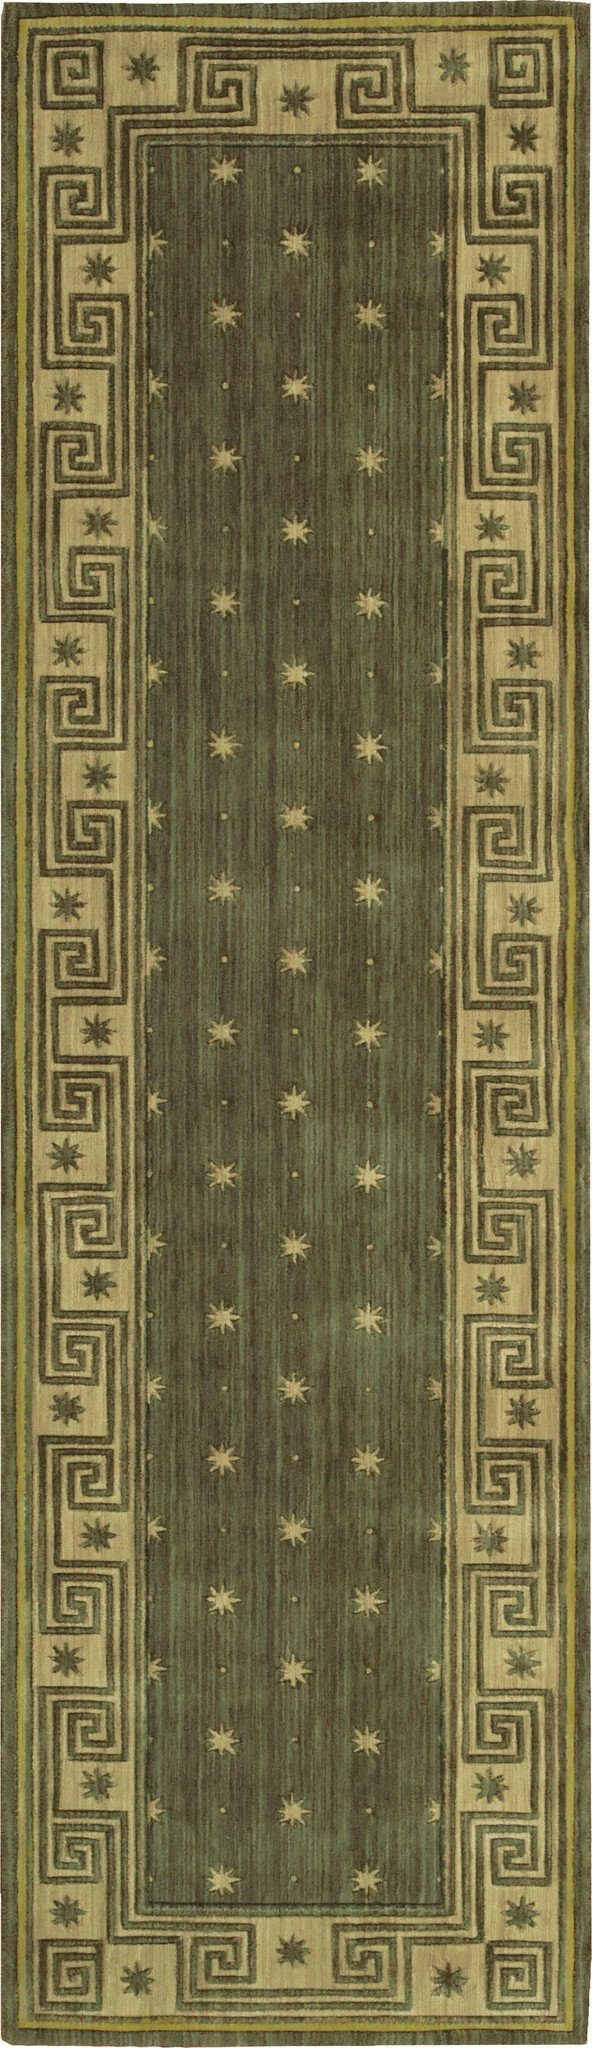 "Cosmopolitan Spruce Rug - 6 Size Options Rugs Nourison 2'3"" x 8' Runner"